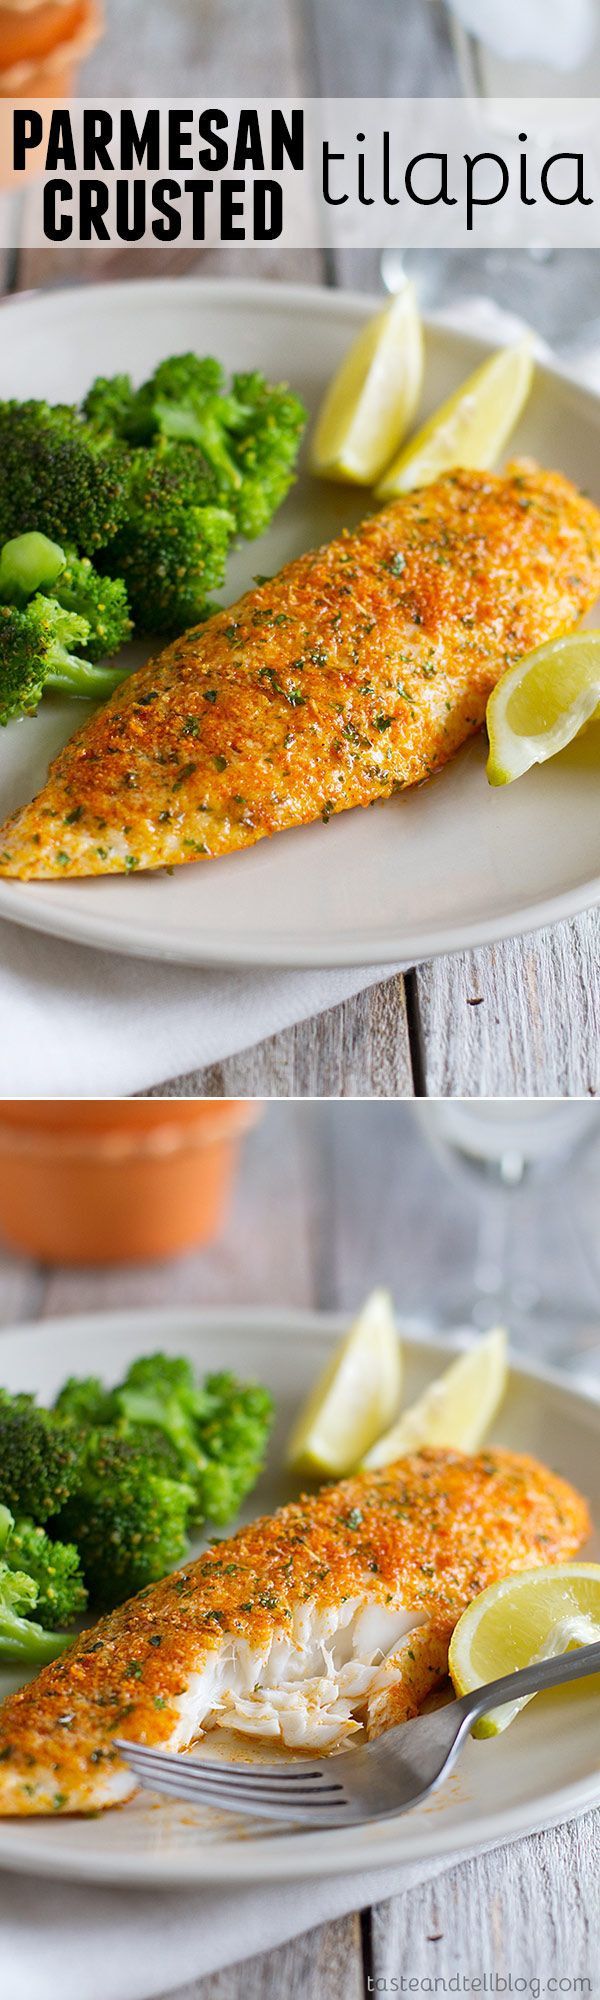 Best 25 baked tilapia recipes ideas only on pinterest for Easy fish recipes